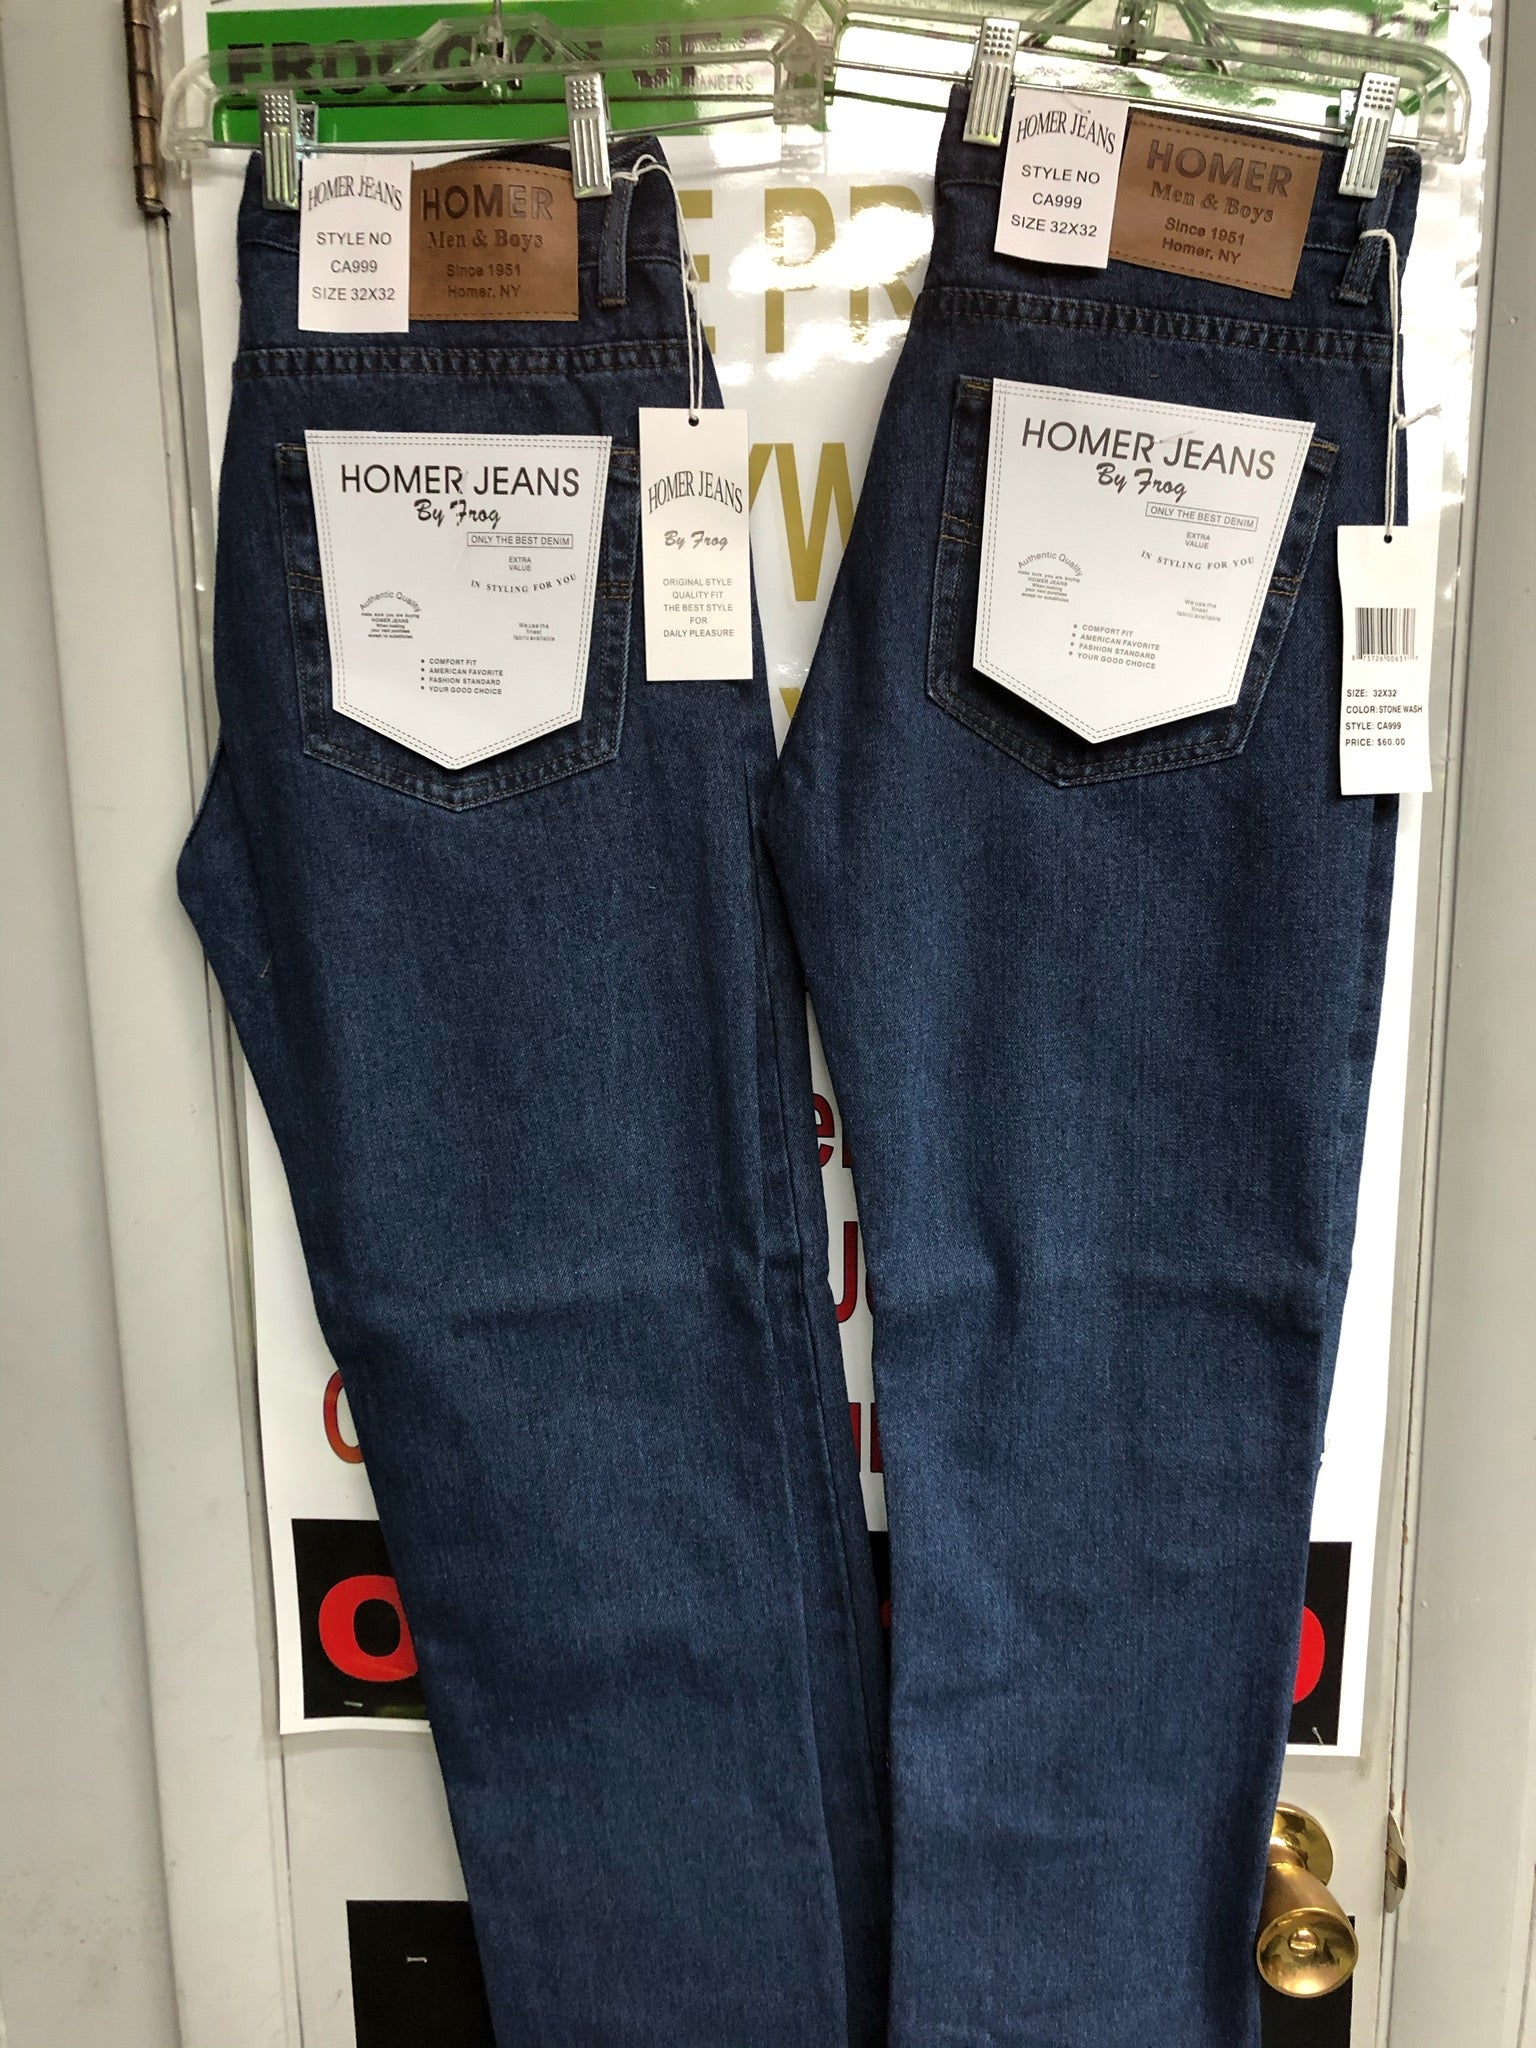 Homer Jeans from Homer Men and Boys